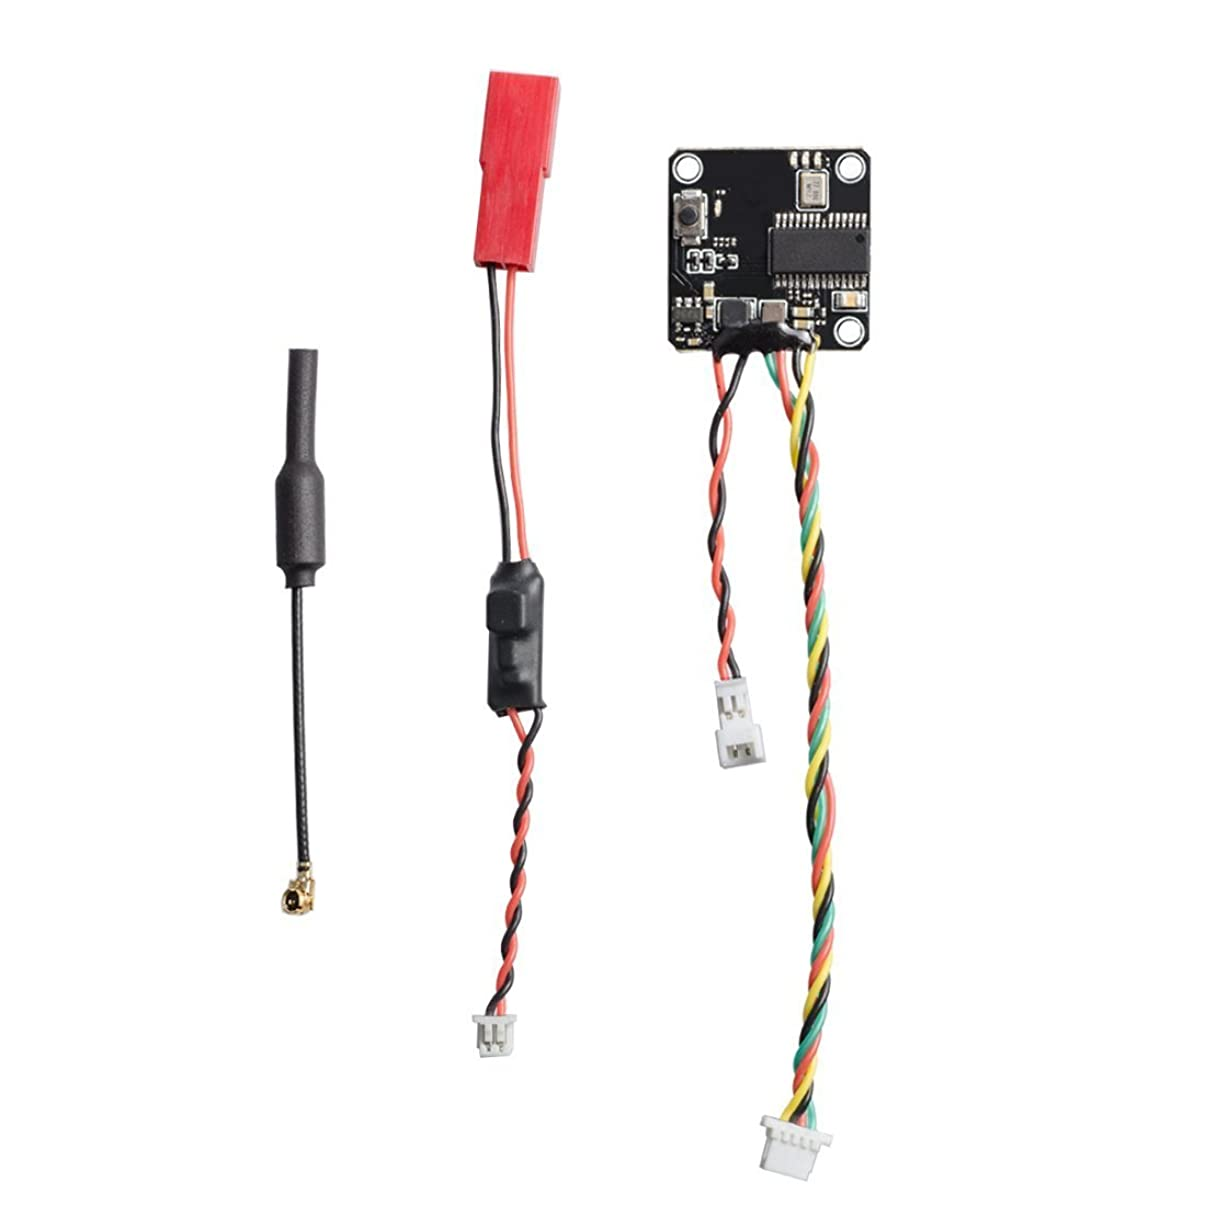 Wolfwhoop Q8 Nano VTX Integrated OSD 5.8GHz 25/100/200mW Switchable FPV Transmitter with IPEX Antenna for Mini Multicopter